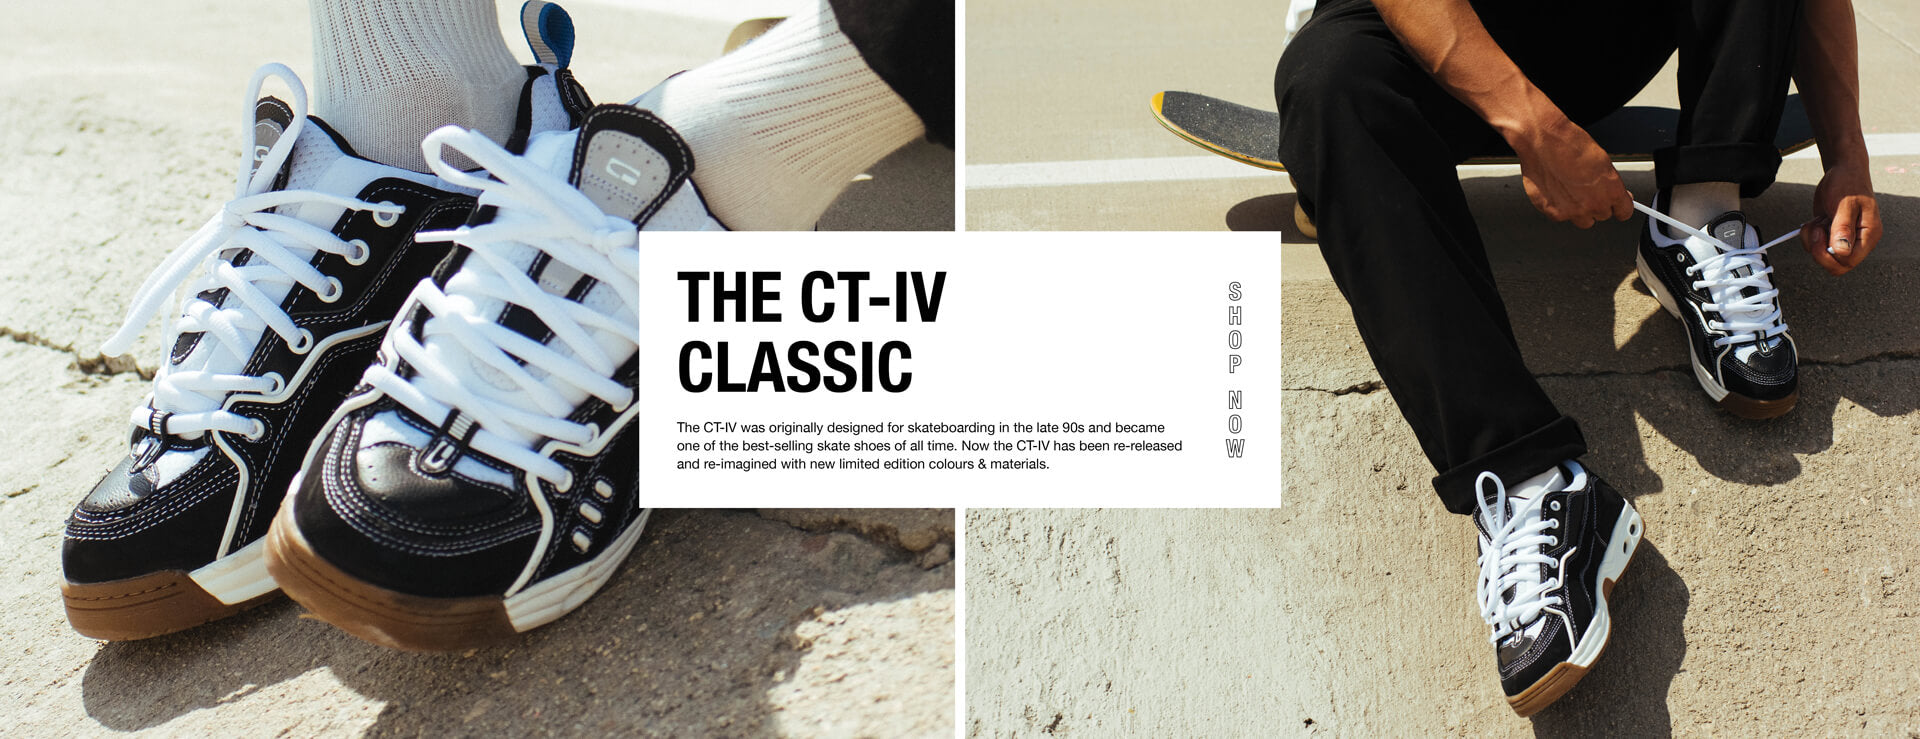 THE CT-IV CLASSIC